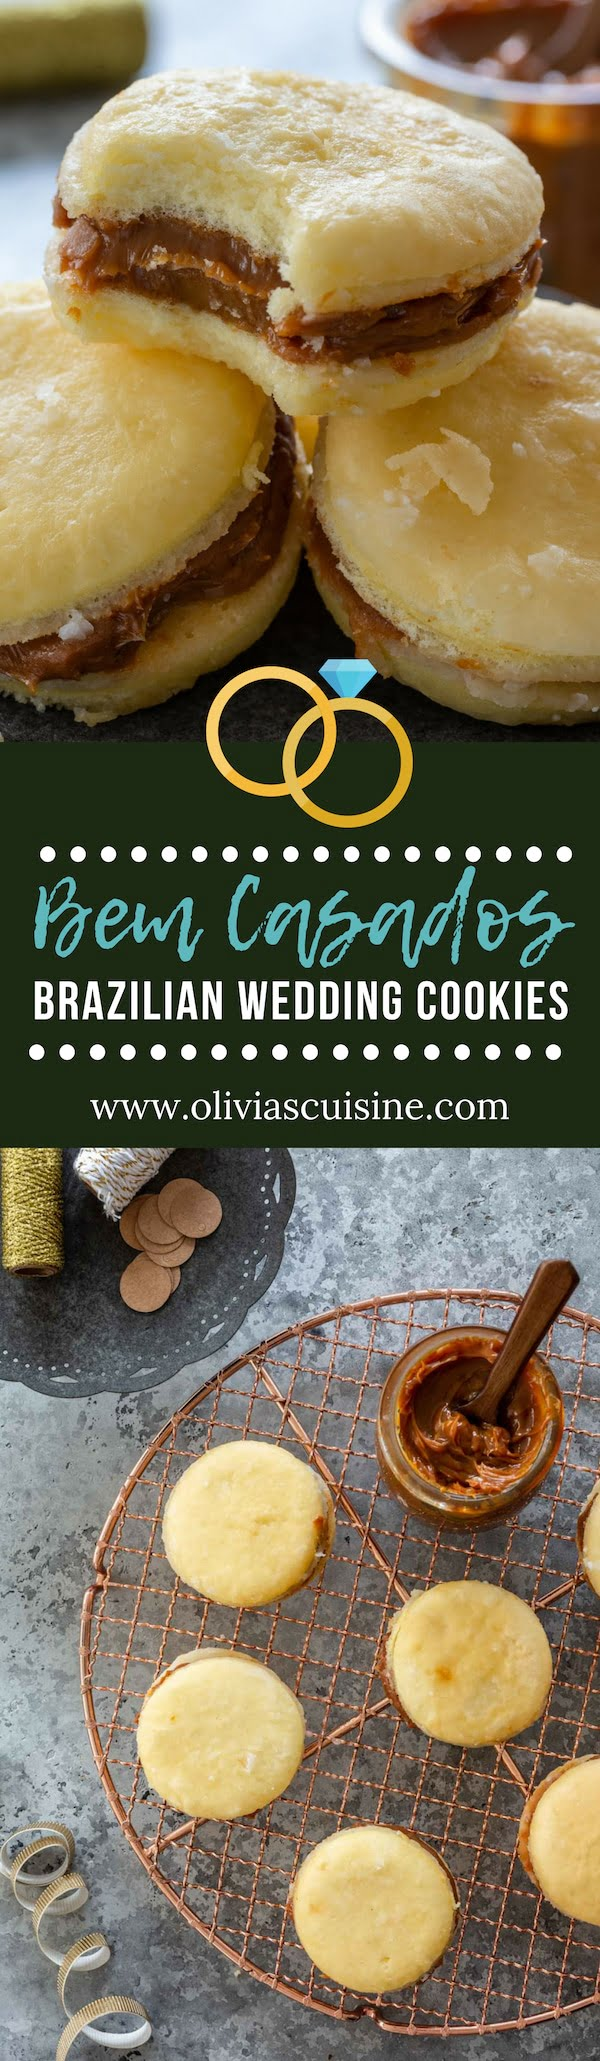 Bem Casados (Brazilian Wedding Cookies) | www.oliviascuisine.com | Bem Casados are traditional Brazilian treats – consisting of dulce de leche sandwiched between two small discs of sponge cake – that are served at weddings, bridal and baby showers, and other special occasions. It is impossible to resist them! (Recipe and food photography by @oliviascuisine). #cookies #brazilian #wedding #dulcedeleche